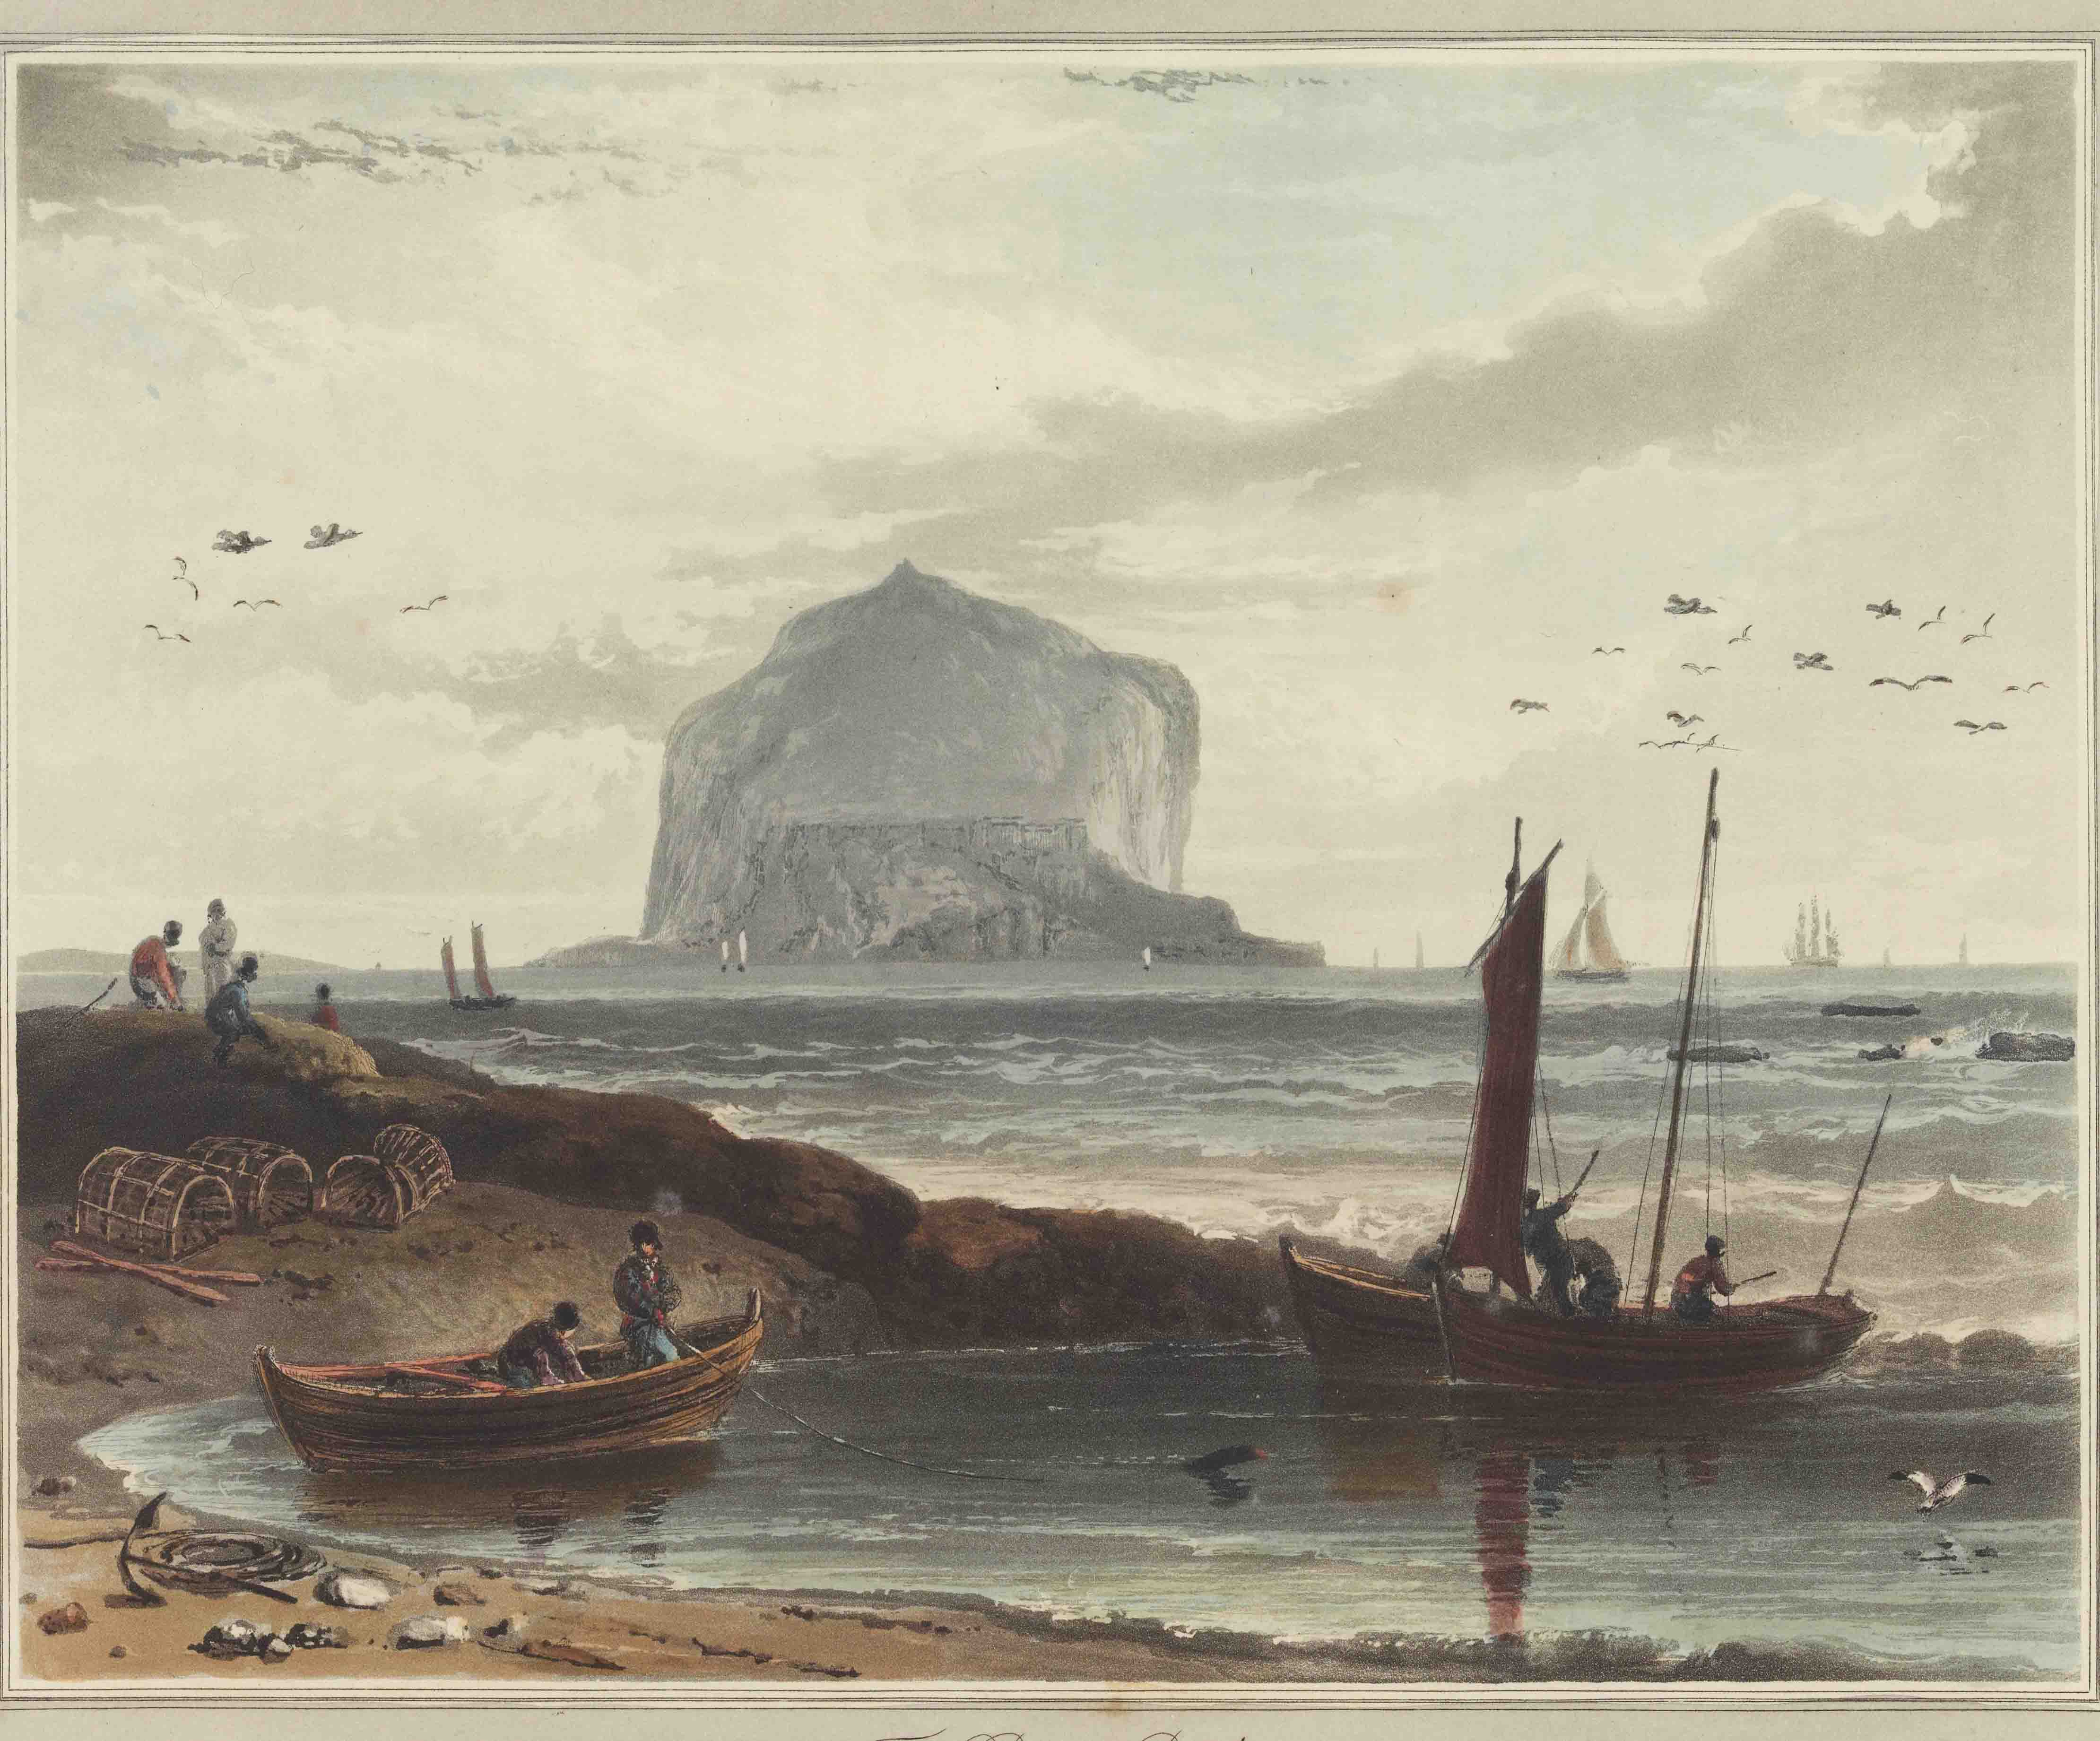 Image of fishermen and boats with Bass Rock in the background